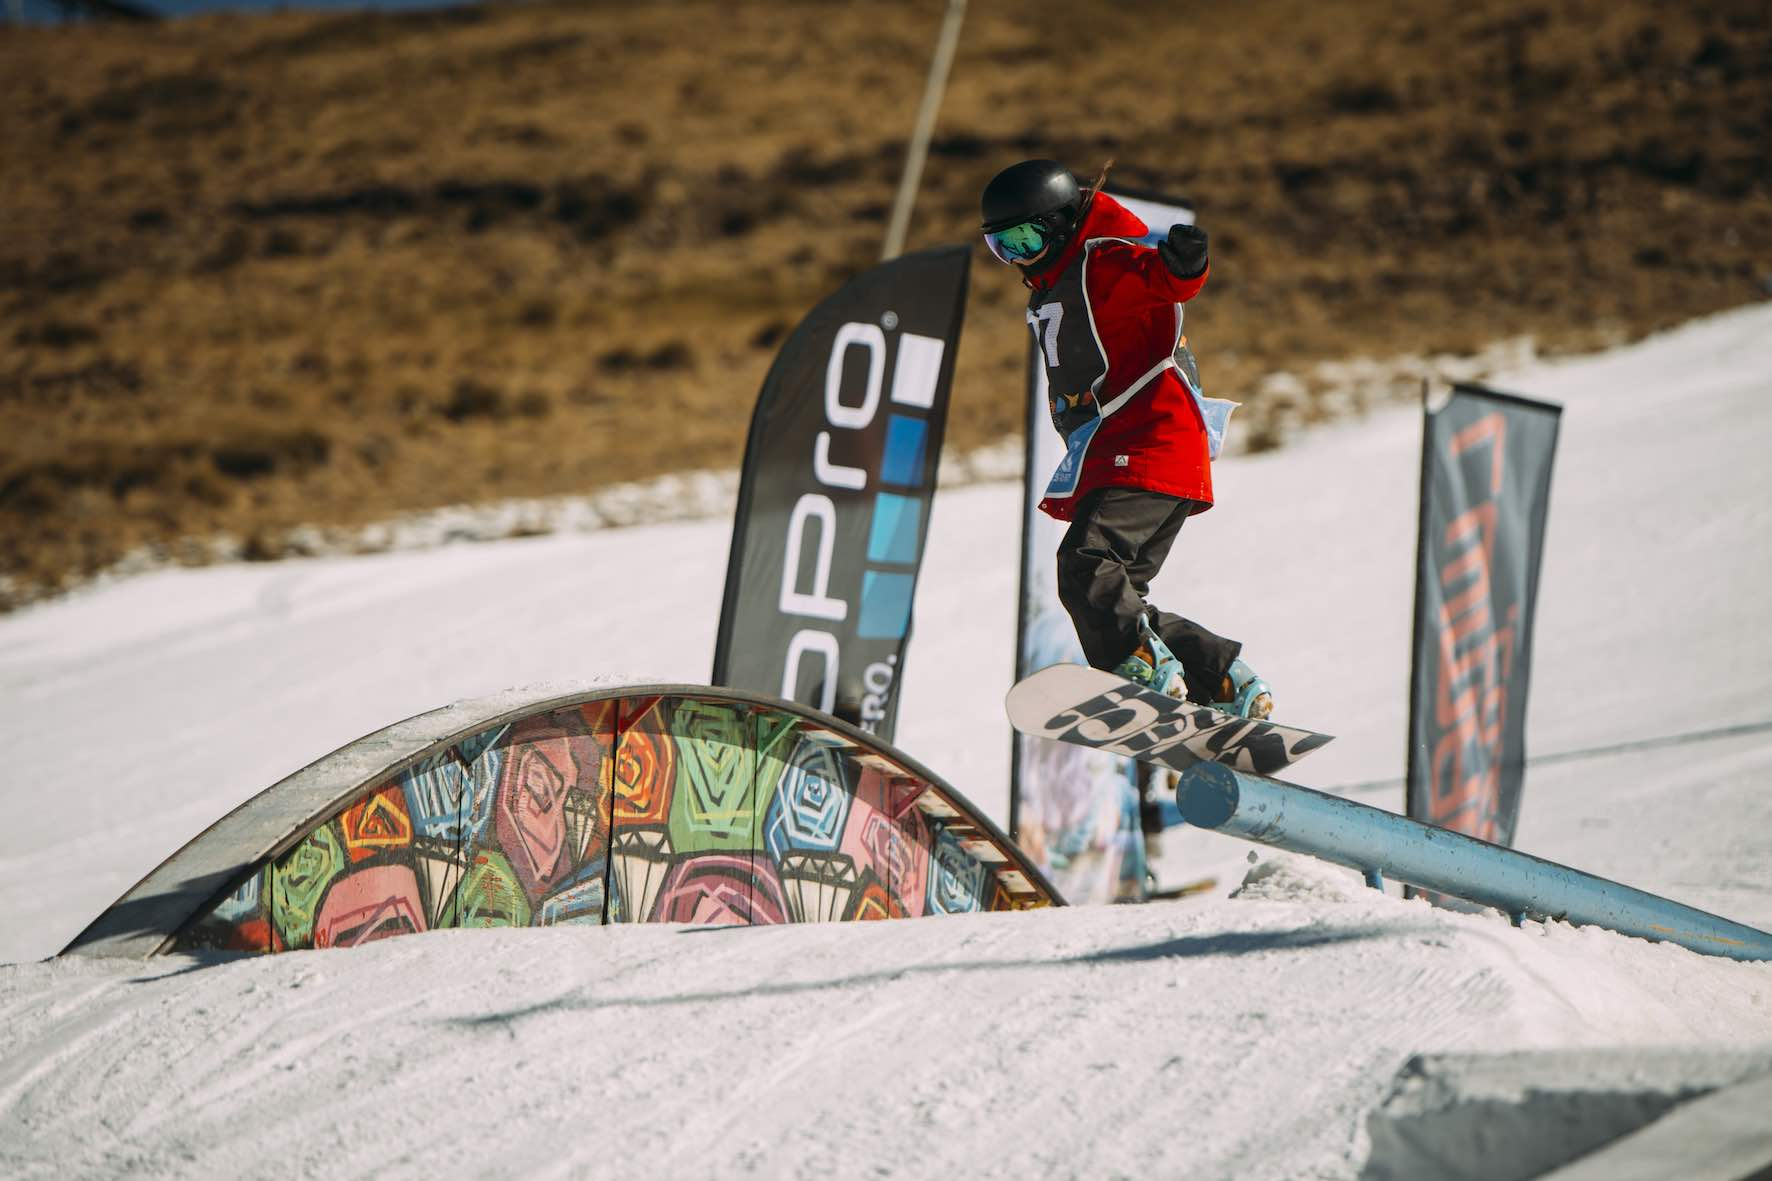 Amy Kawanishi snowboarding in the 2019 2019 Ultimate Ears Winter Whip Snowboard and Ski Festival